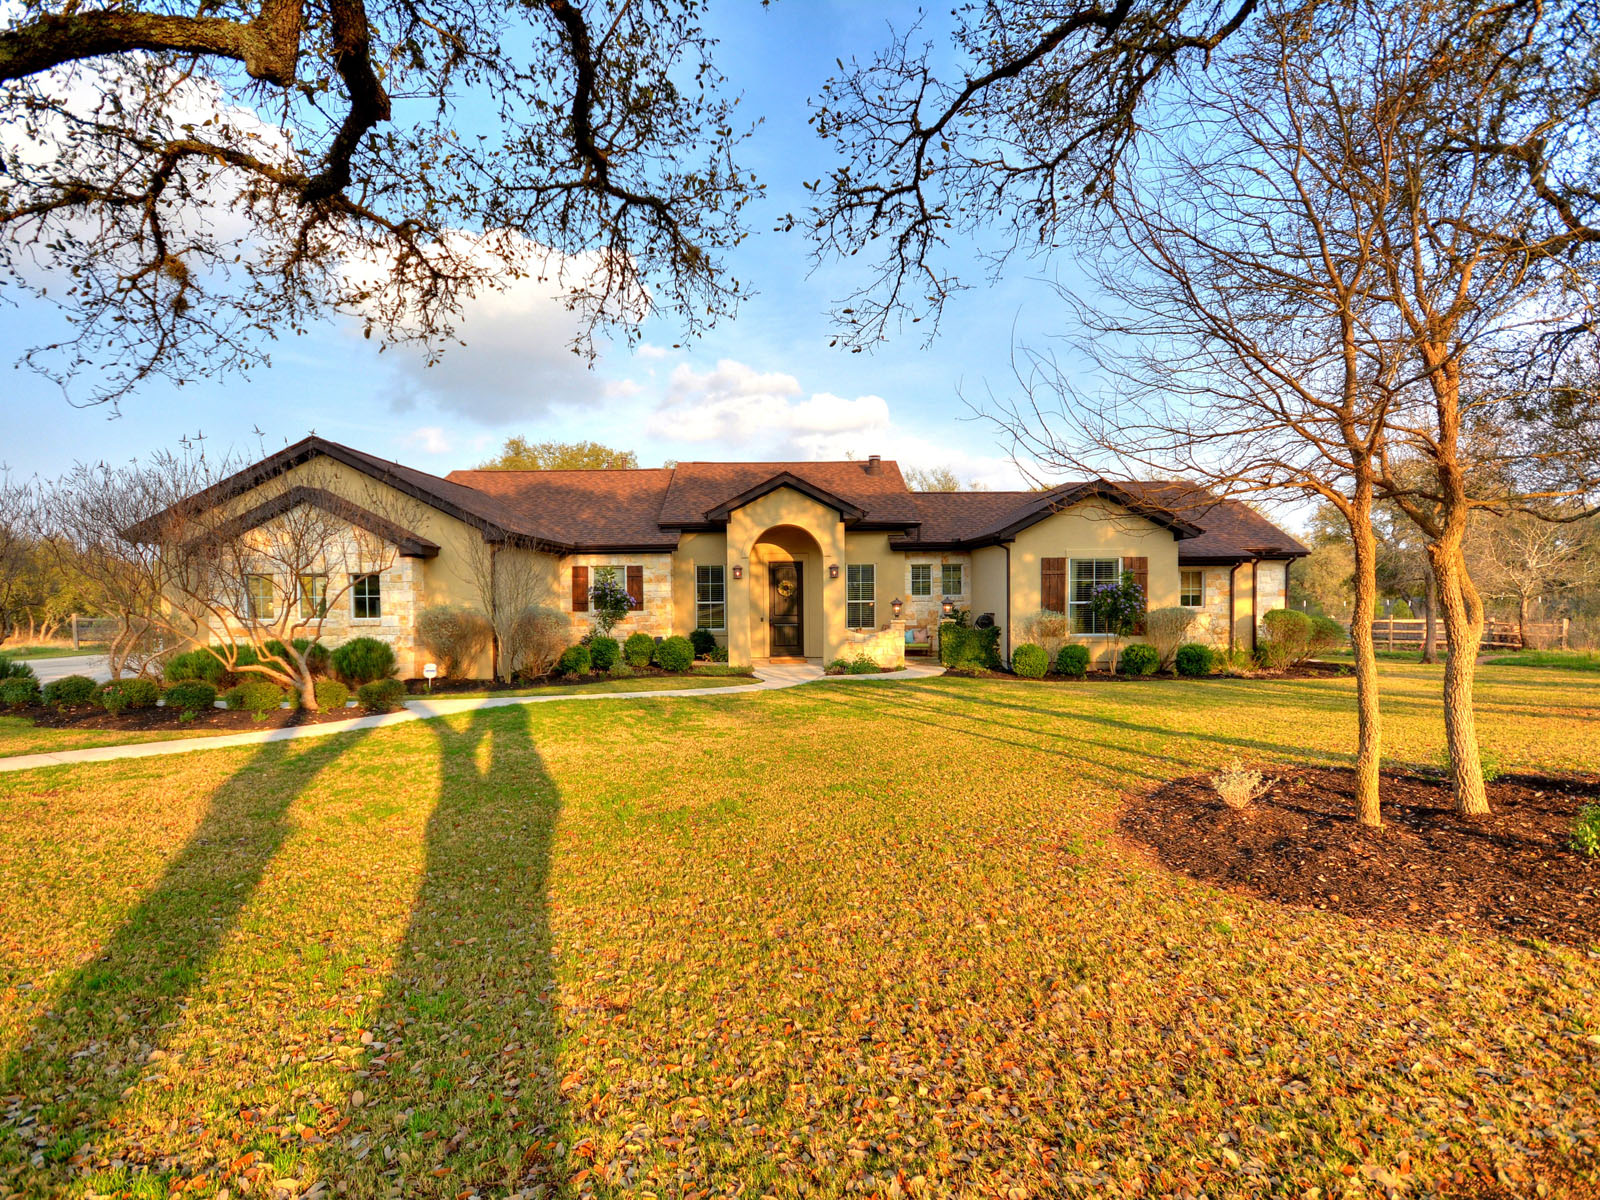 Single Family Home for Sale at Beautiful Custom Single Story in Sierra West 485 Canna Lily Cir Driftwood, Texas 78619 United States